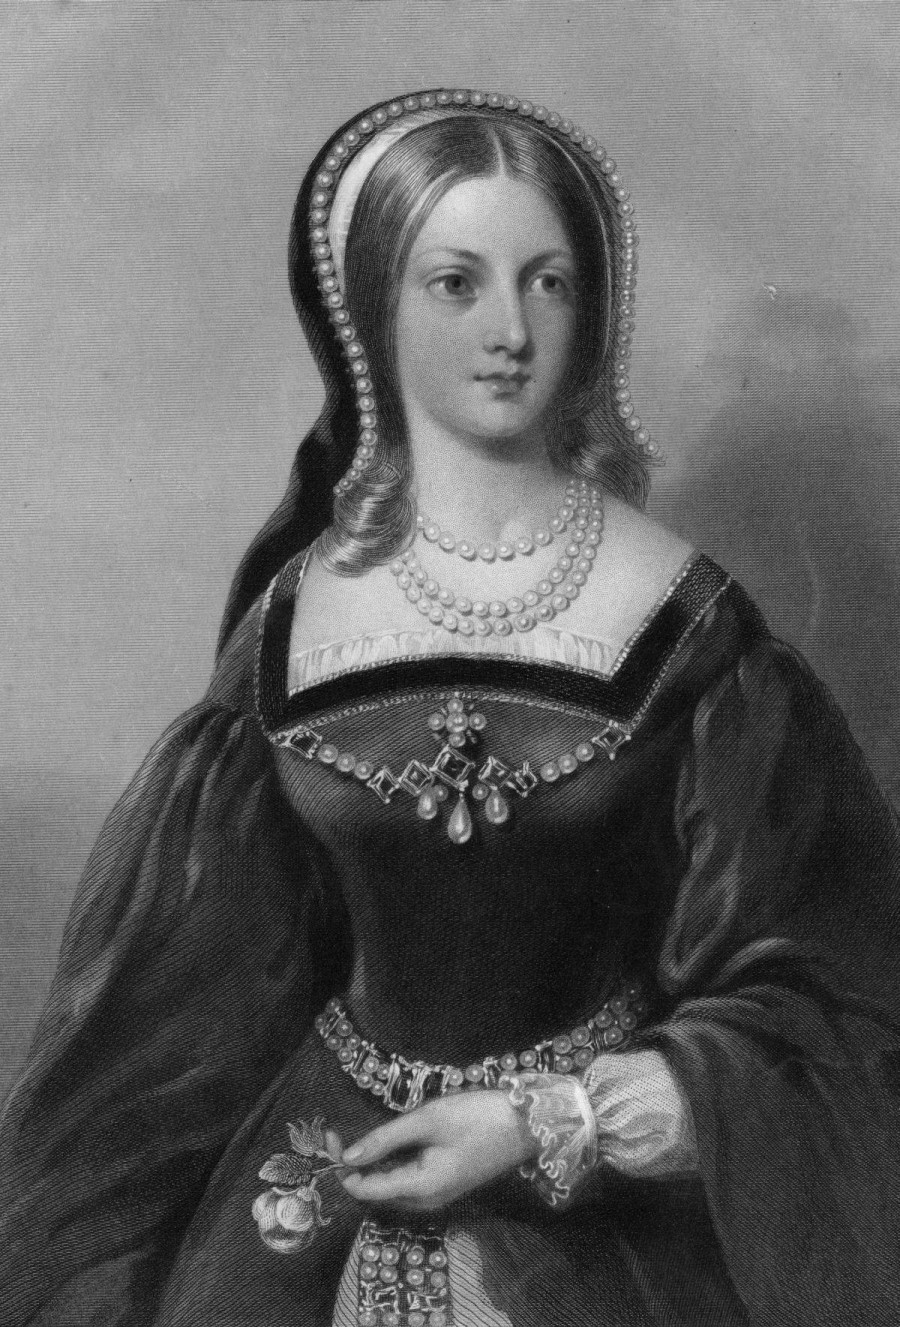 Lady Jane Grey: Queen, Theologian, Martyr...Teenager?